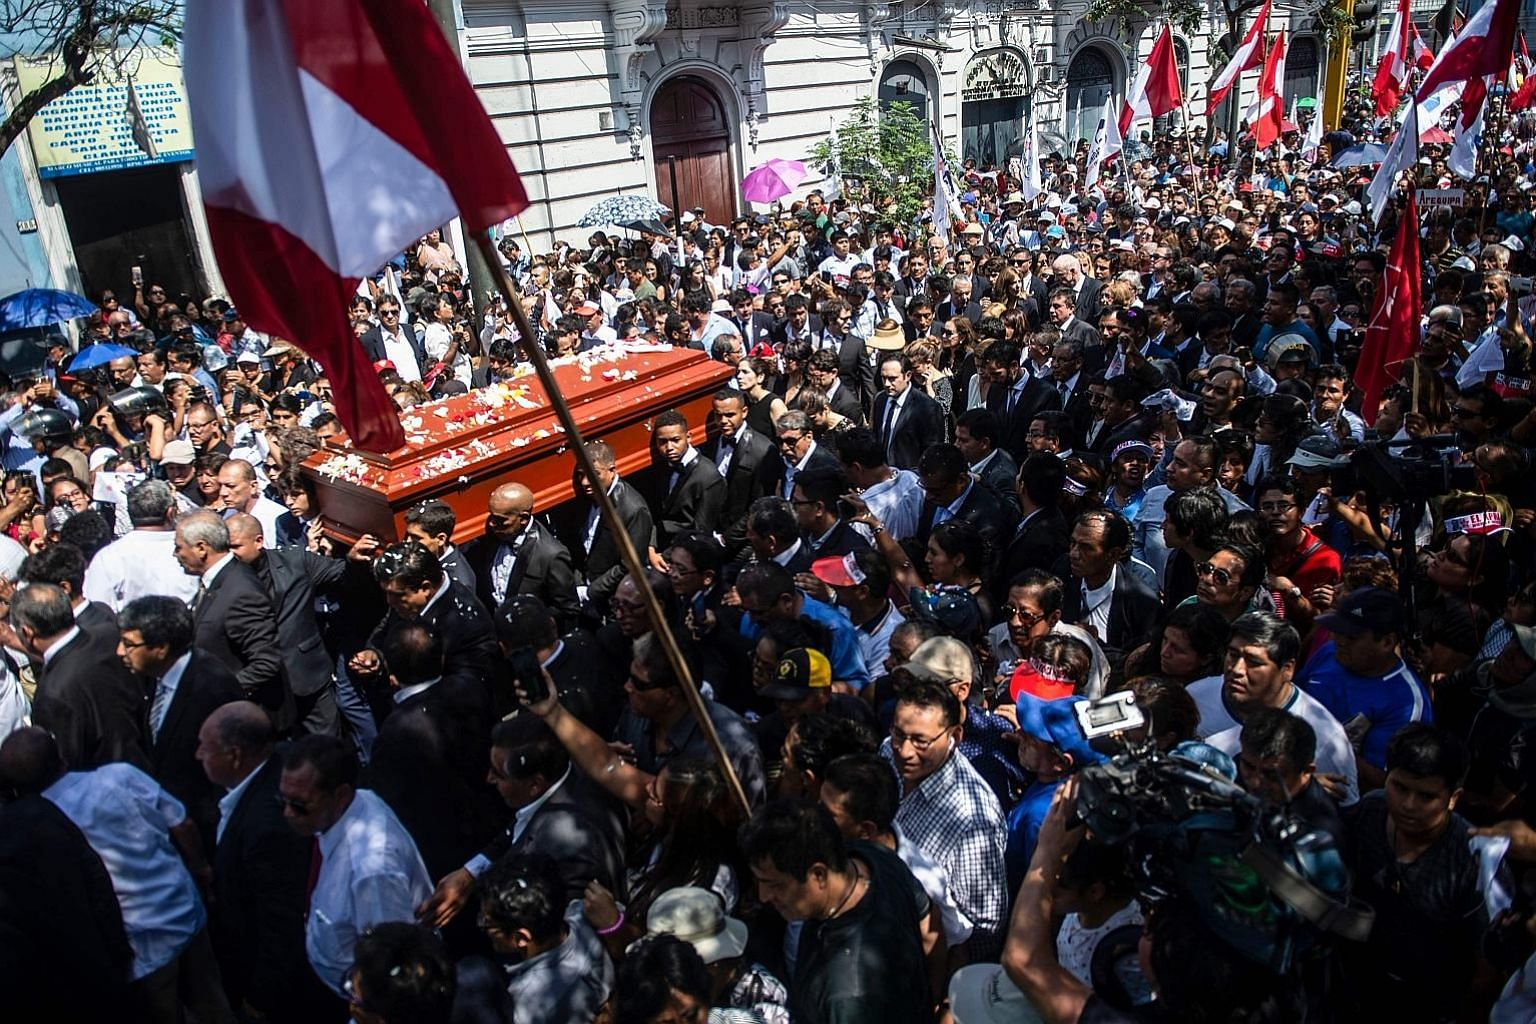 People carrying the coffin of late Peruvian ex-president Alan Garcia during his funeral procession in Lima on Friday. He died in hospital on Wednesday after shooting himself in the head at his home as the police were about to arrest him. He was suspe